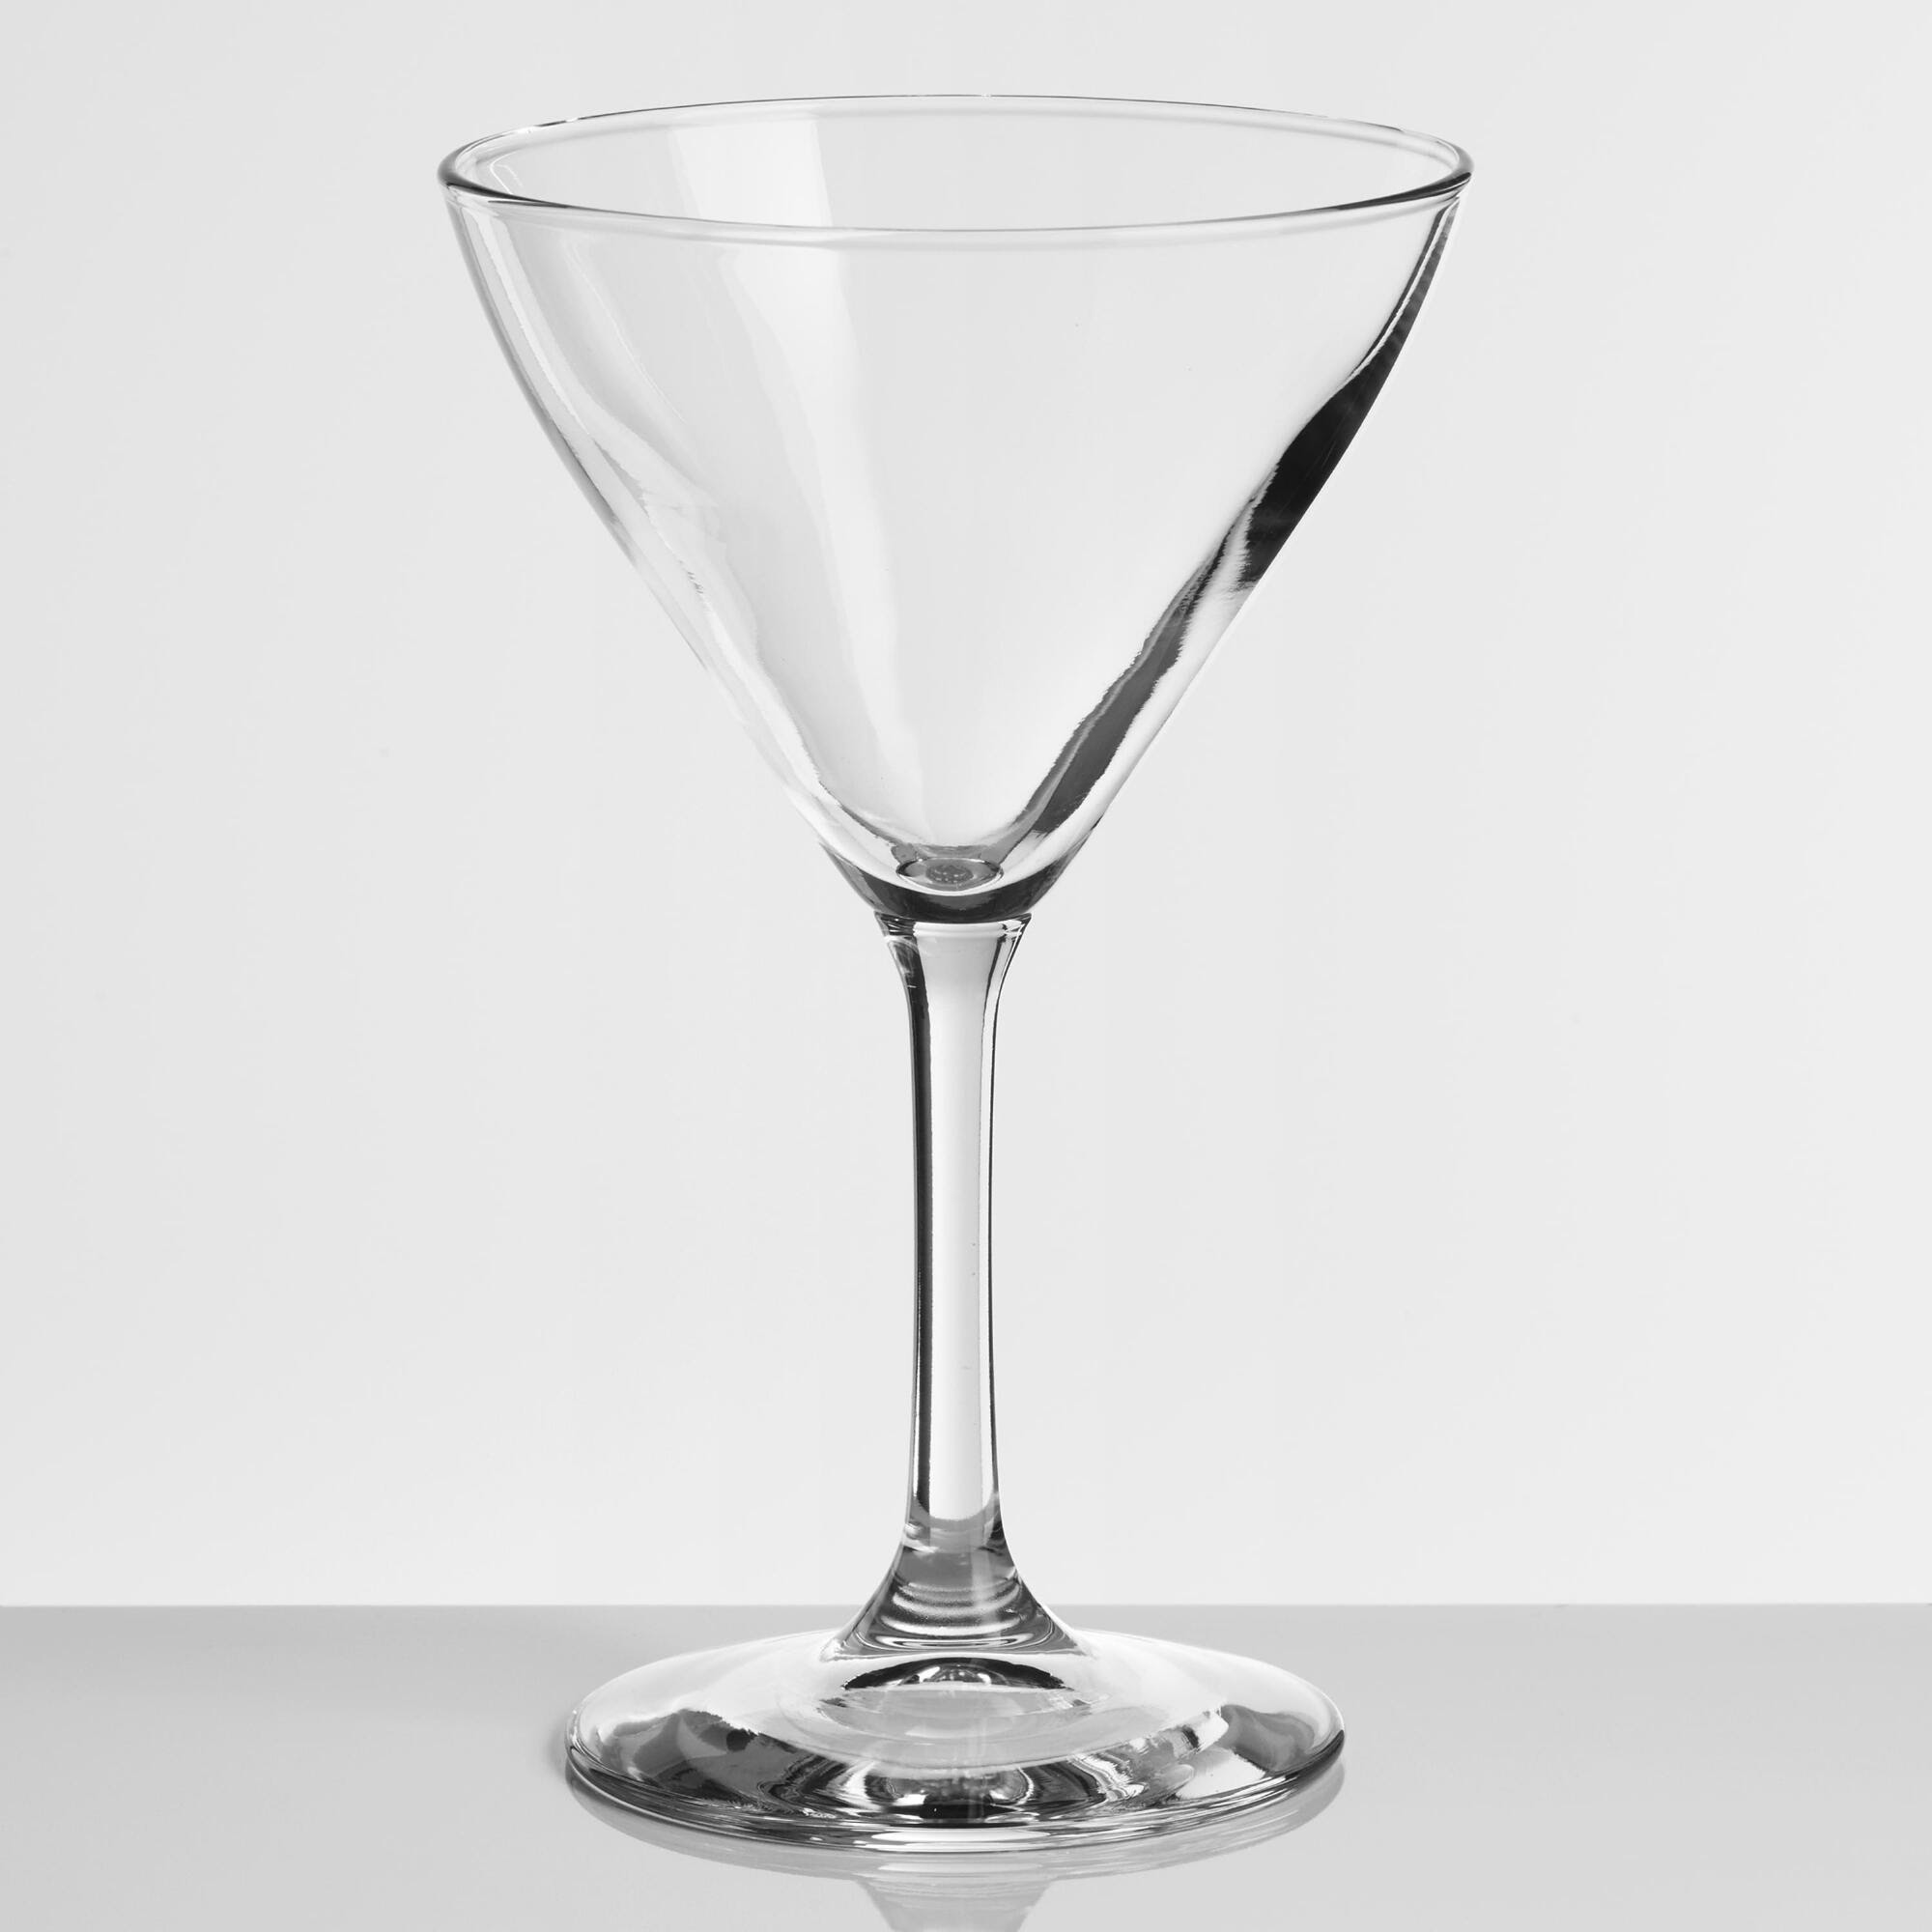 Madison Martini Glasses - Set of 6 - Cost Plus World Market